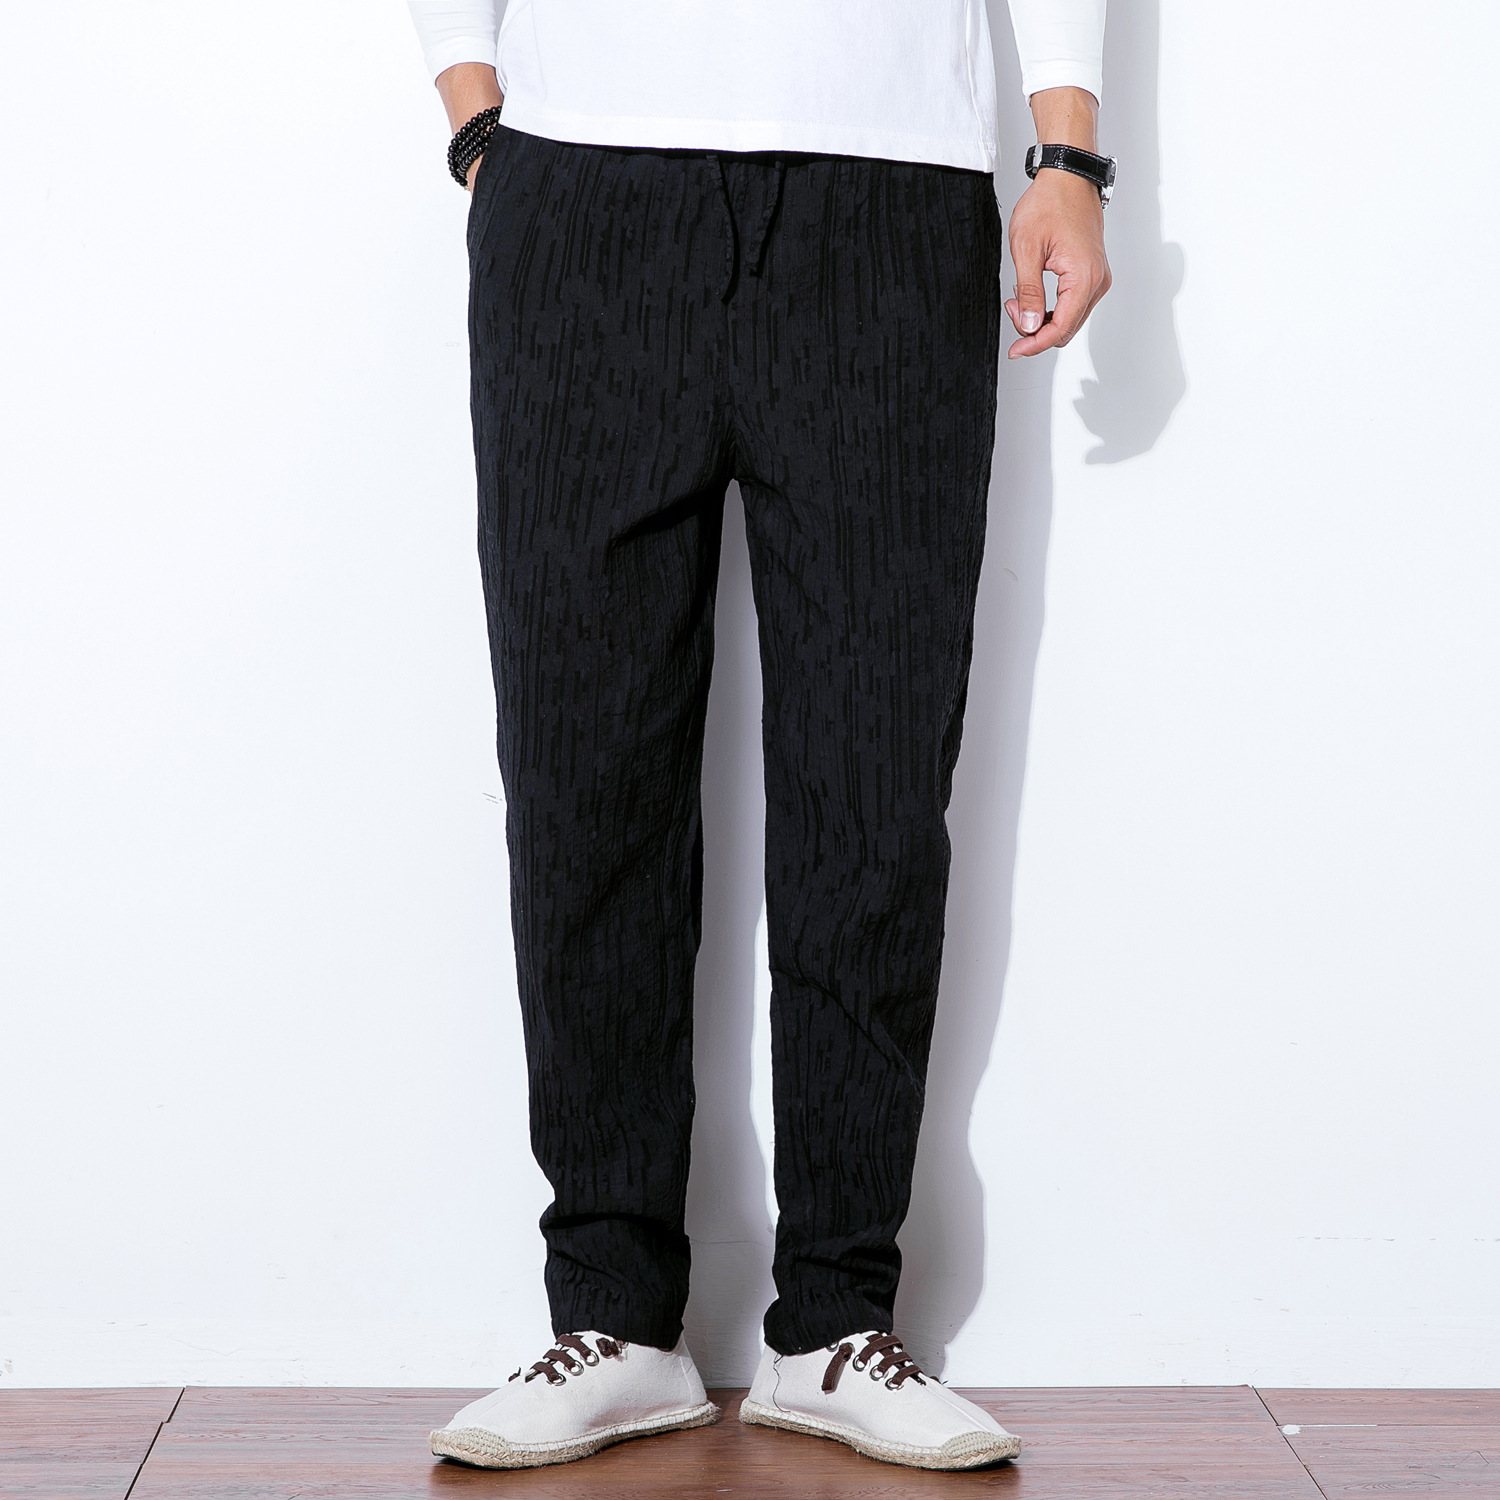 Chinese-style Cotton Linen MEN'S Trousers 2019 New Style Loose-Fit Straight-leg Pants Men Flax Casual Pants Retro Large Size Tro